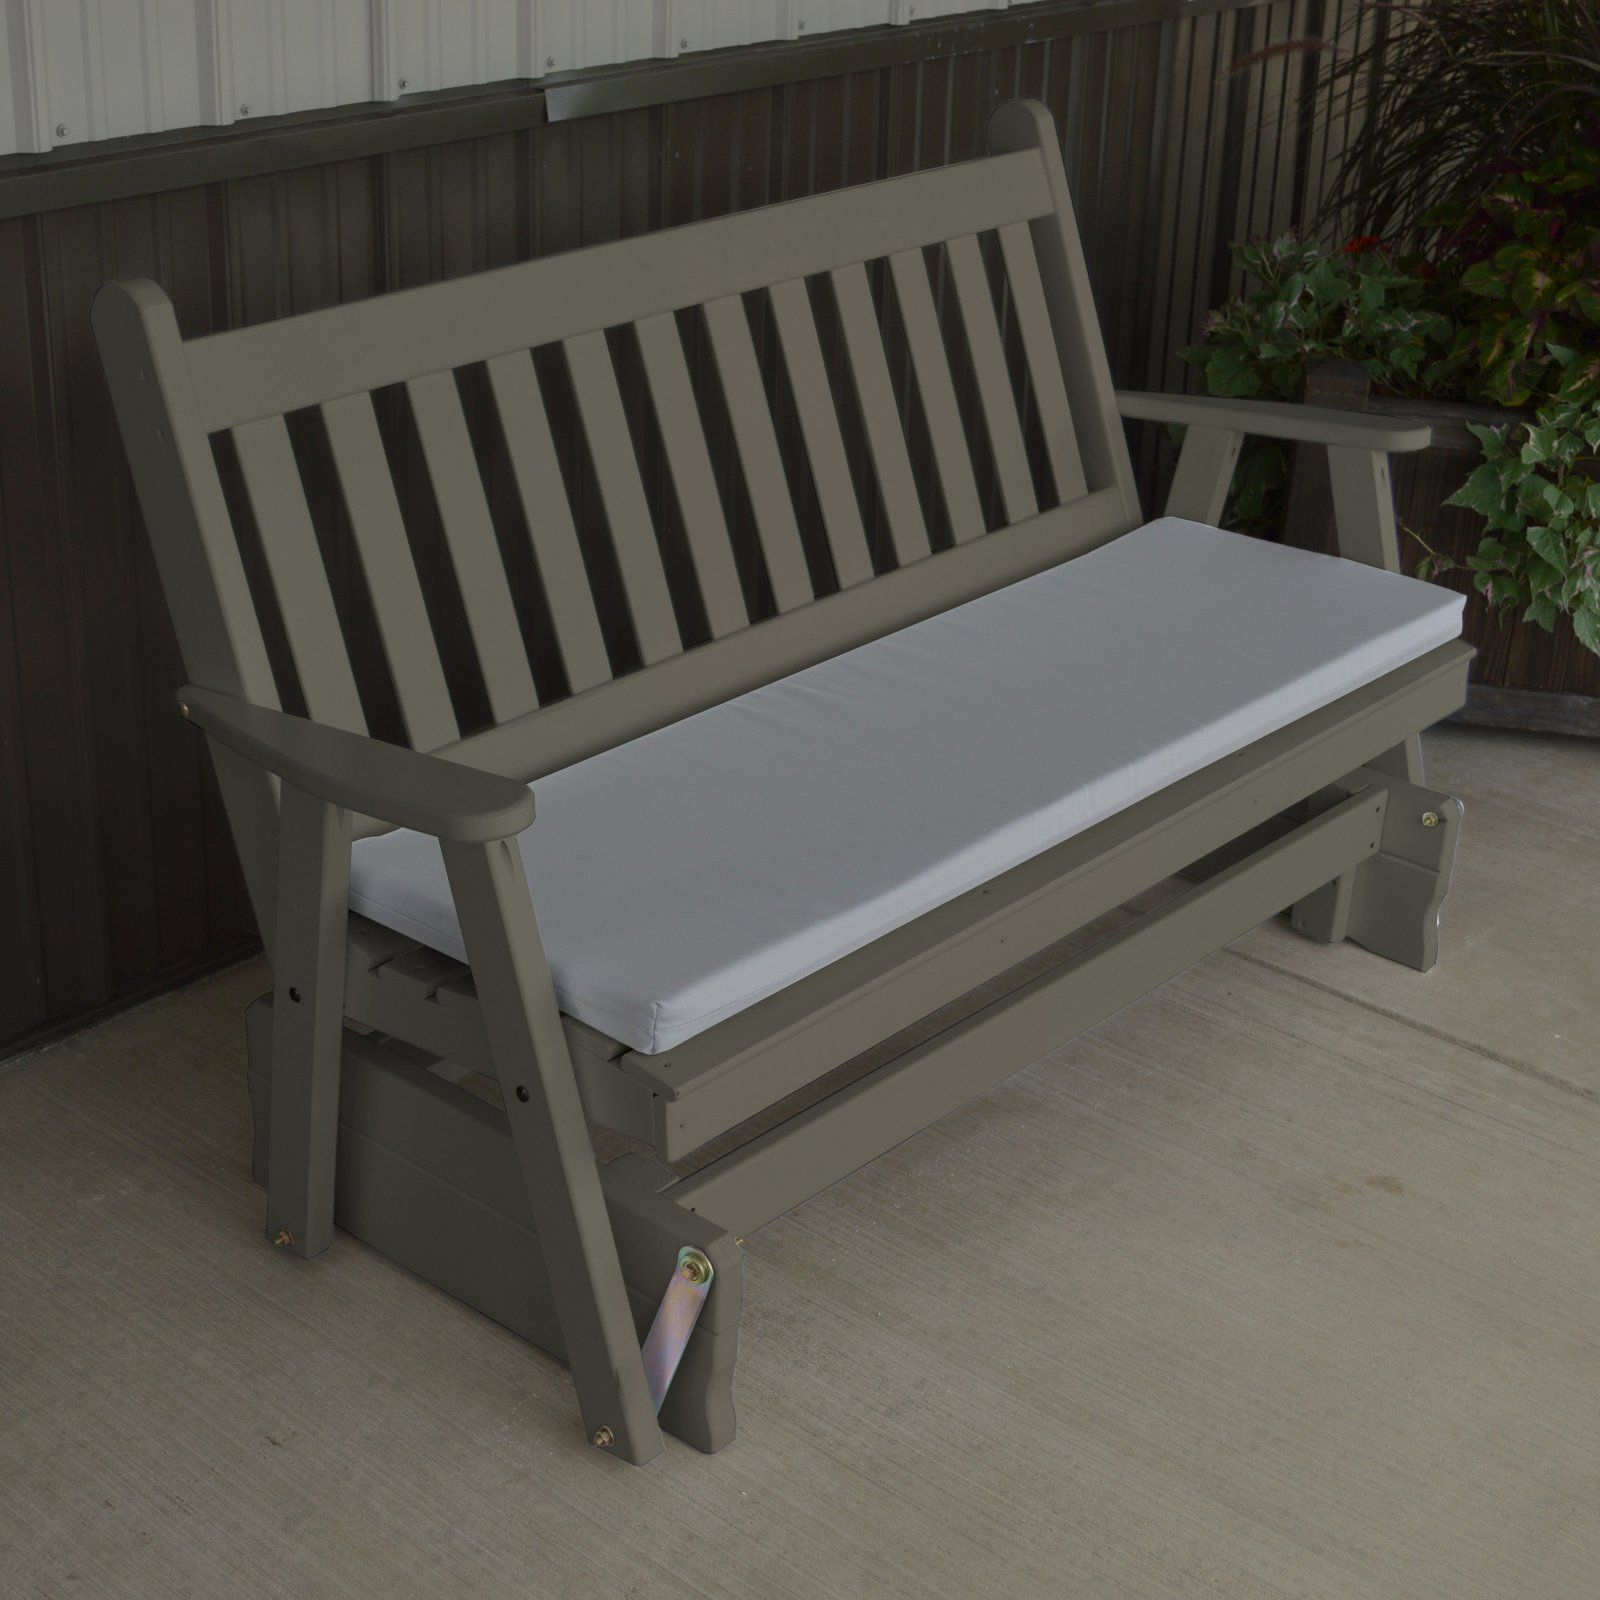 A & L Furniture Yellow Pine Traditional English Outdoor With Traditional English Glider Benches (View 11 of 25)